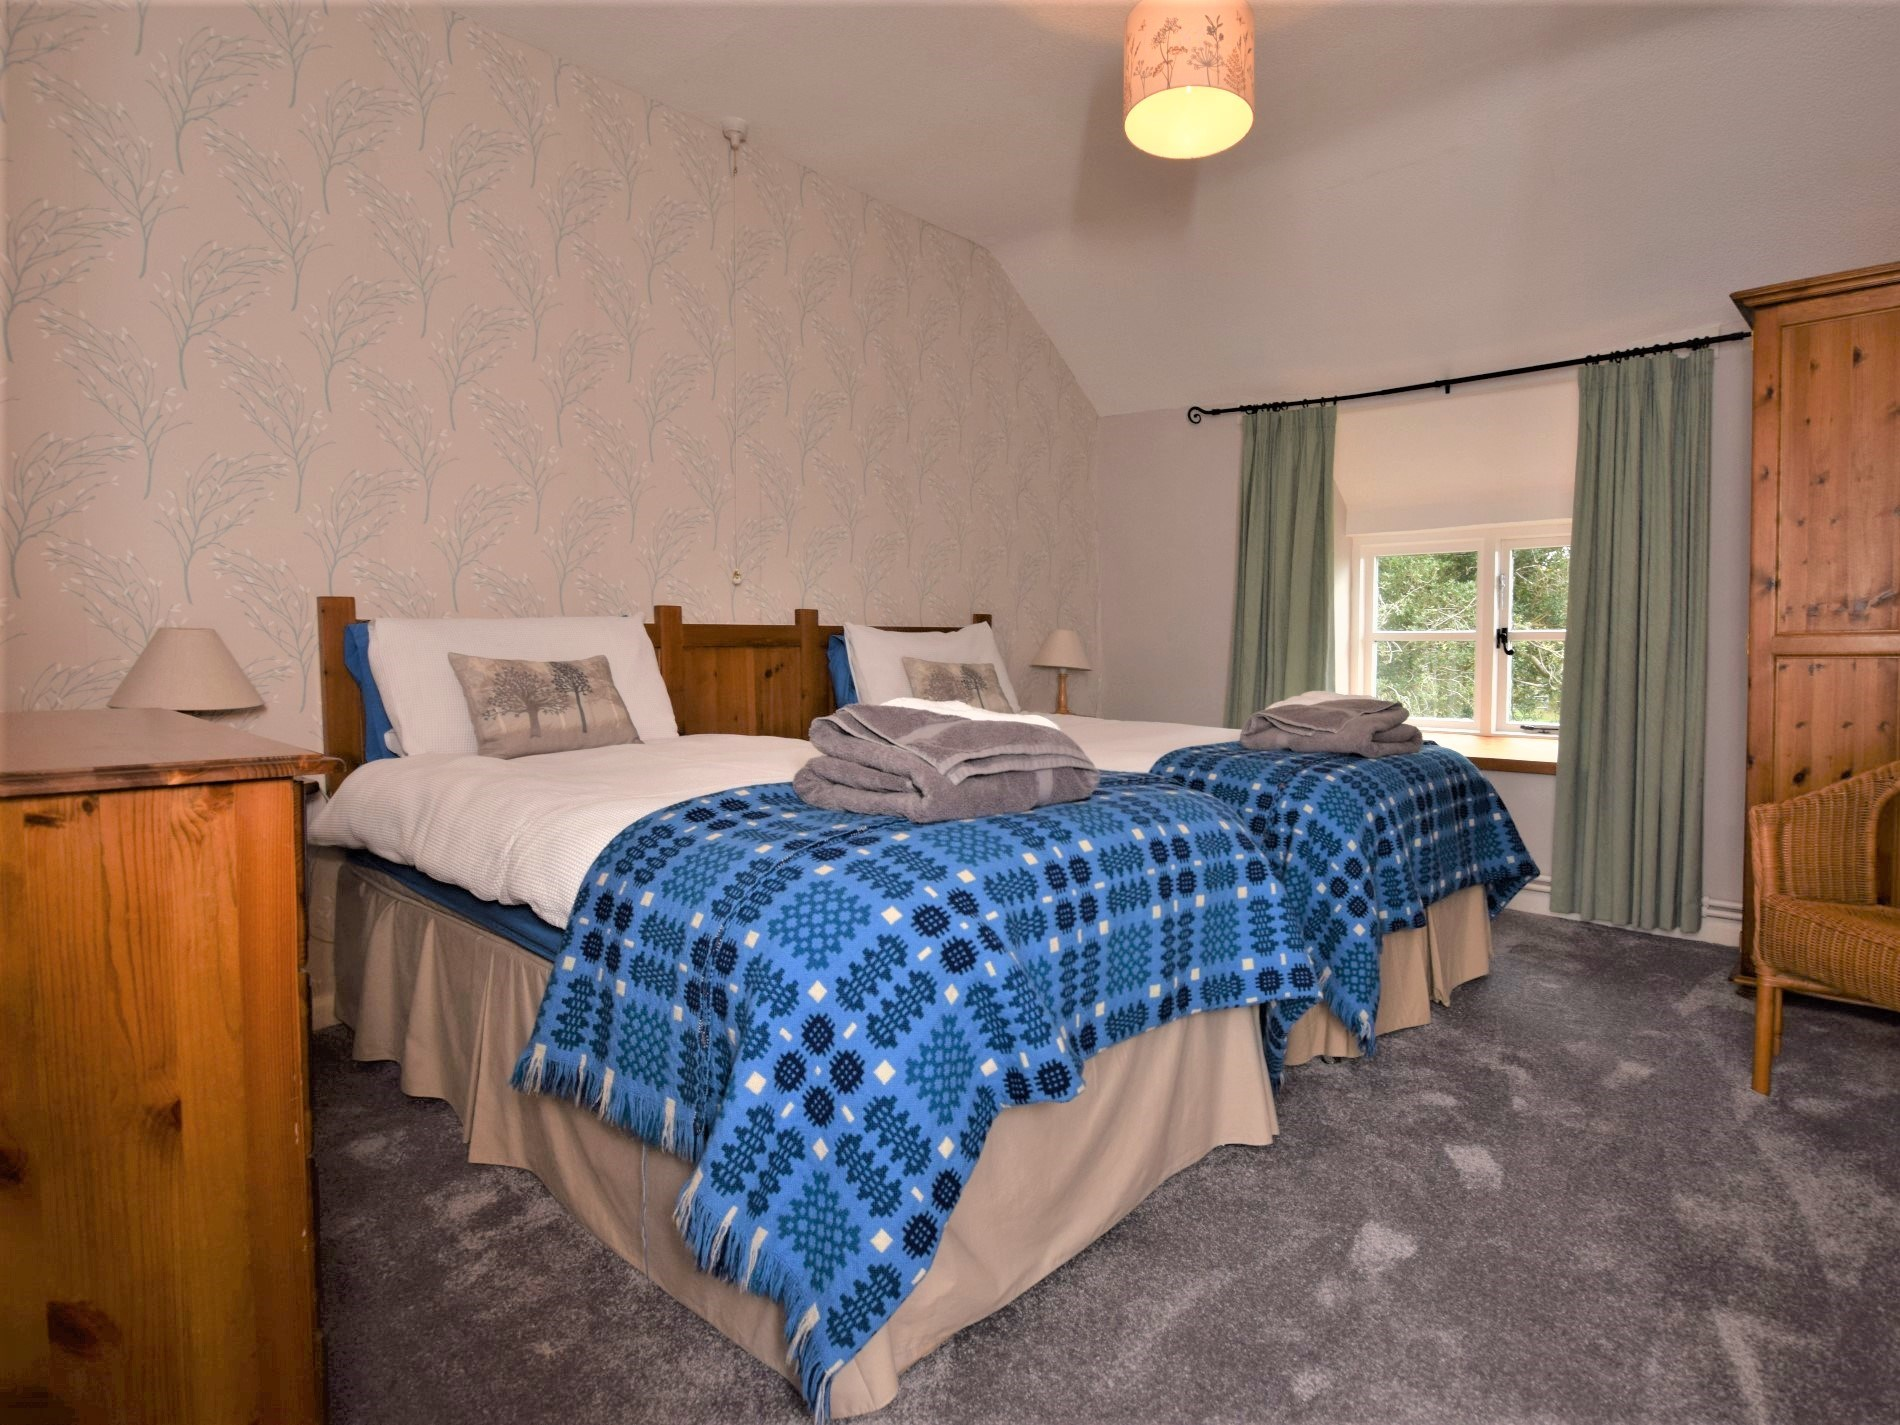 4 Bedroom Cottage in Llanrwst, Snowdonia, North Wales and Cheshire